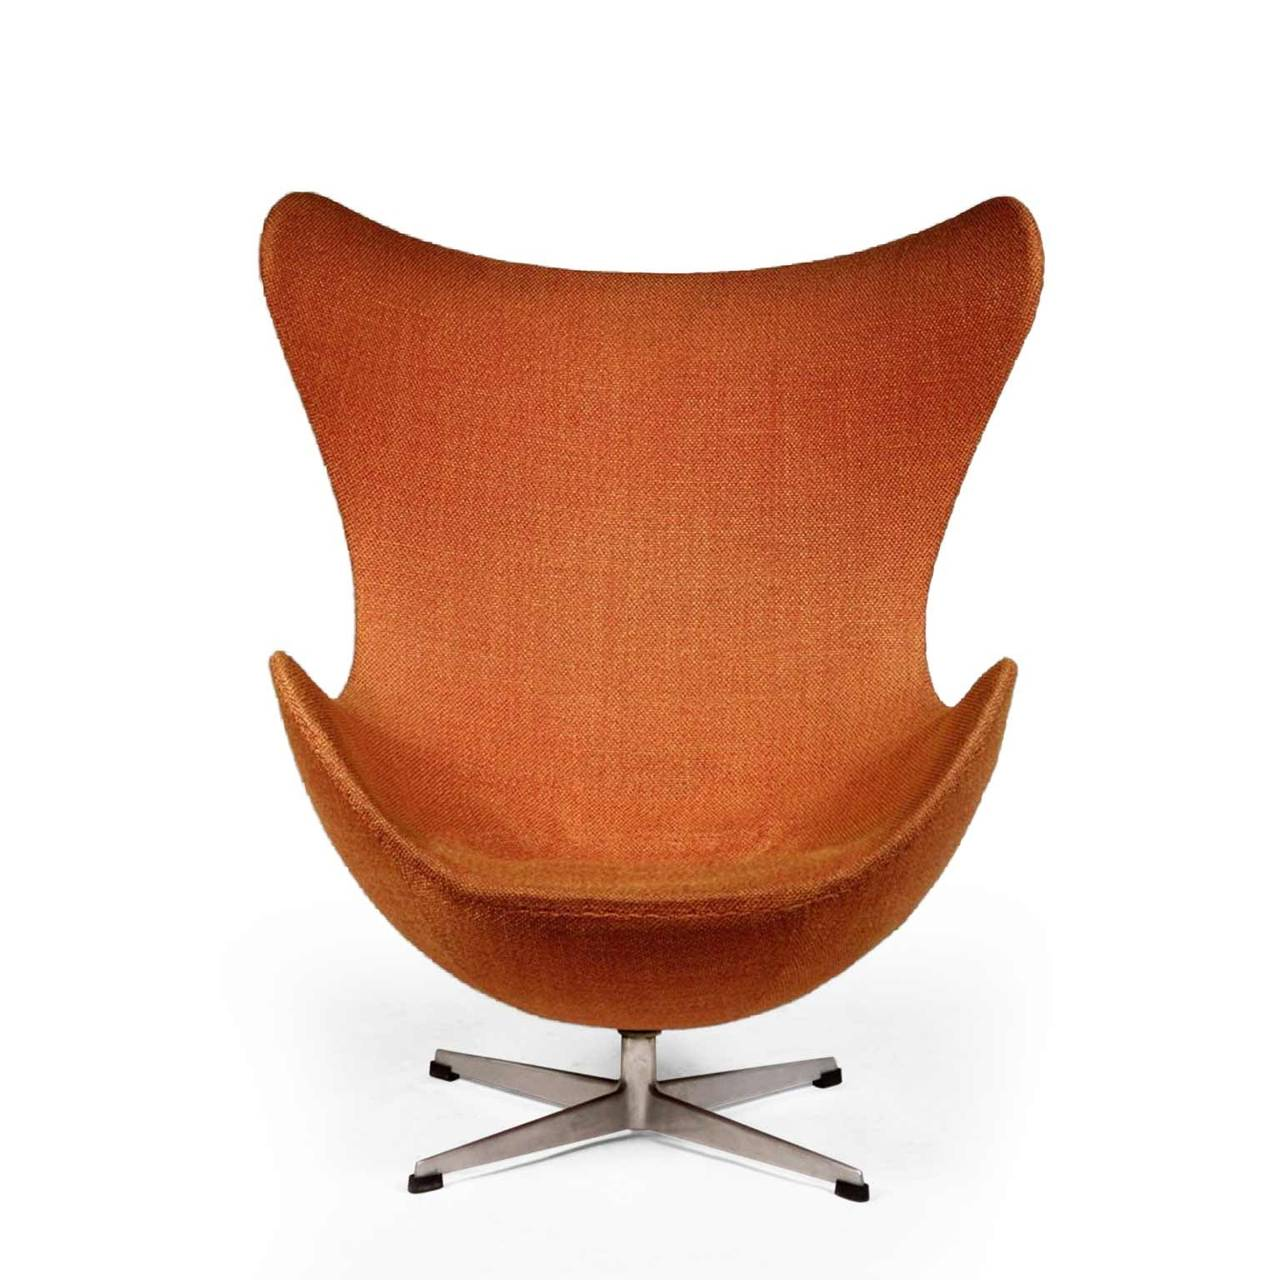 egg chairs for sale grey rocking chair cushions arne jacobsen at 1stdibs